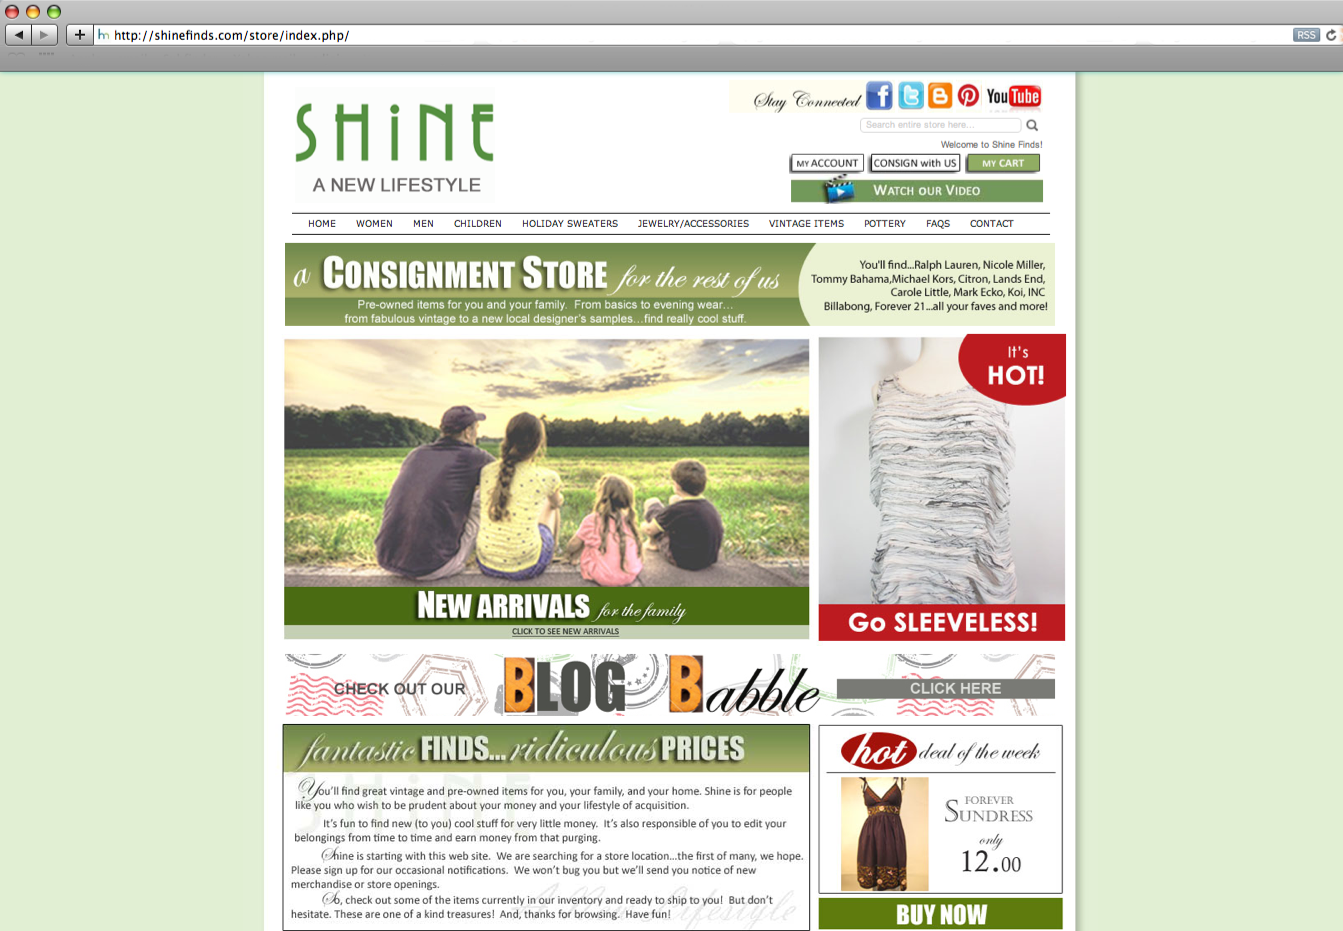 E-Commerce Solutions and Web Store Design - Shine